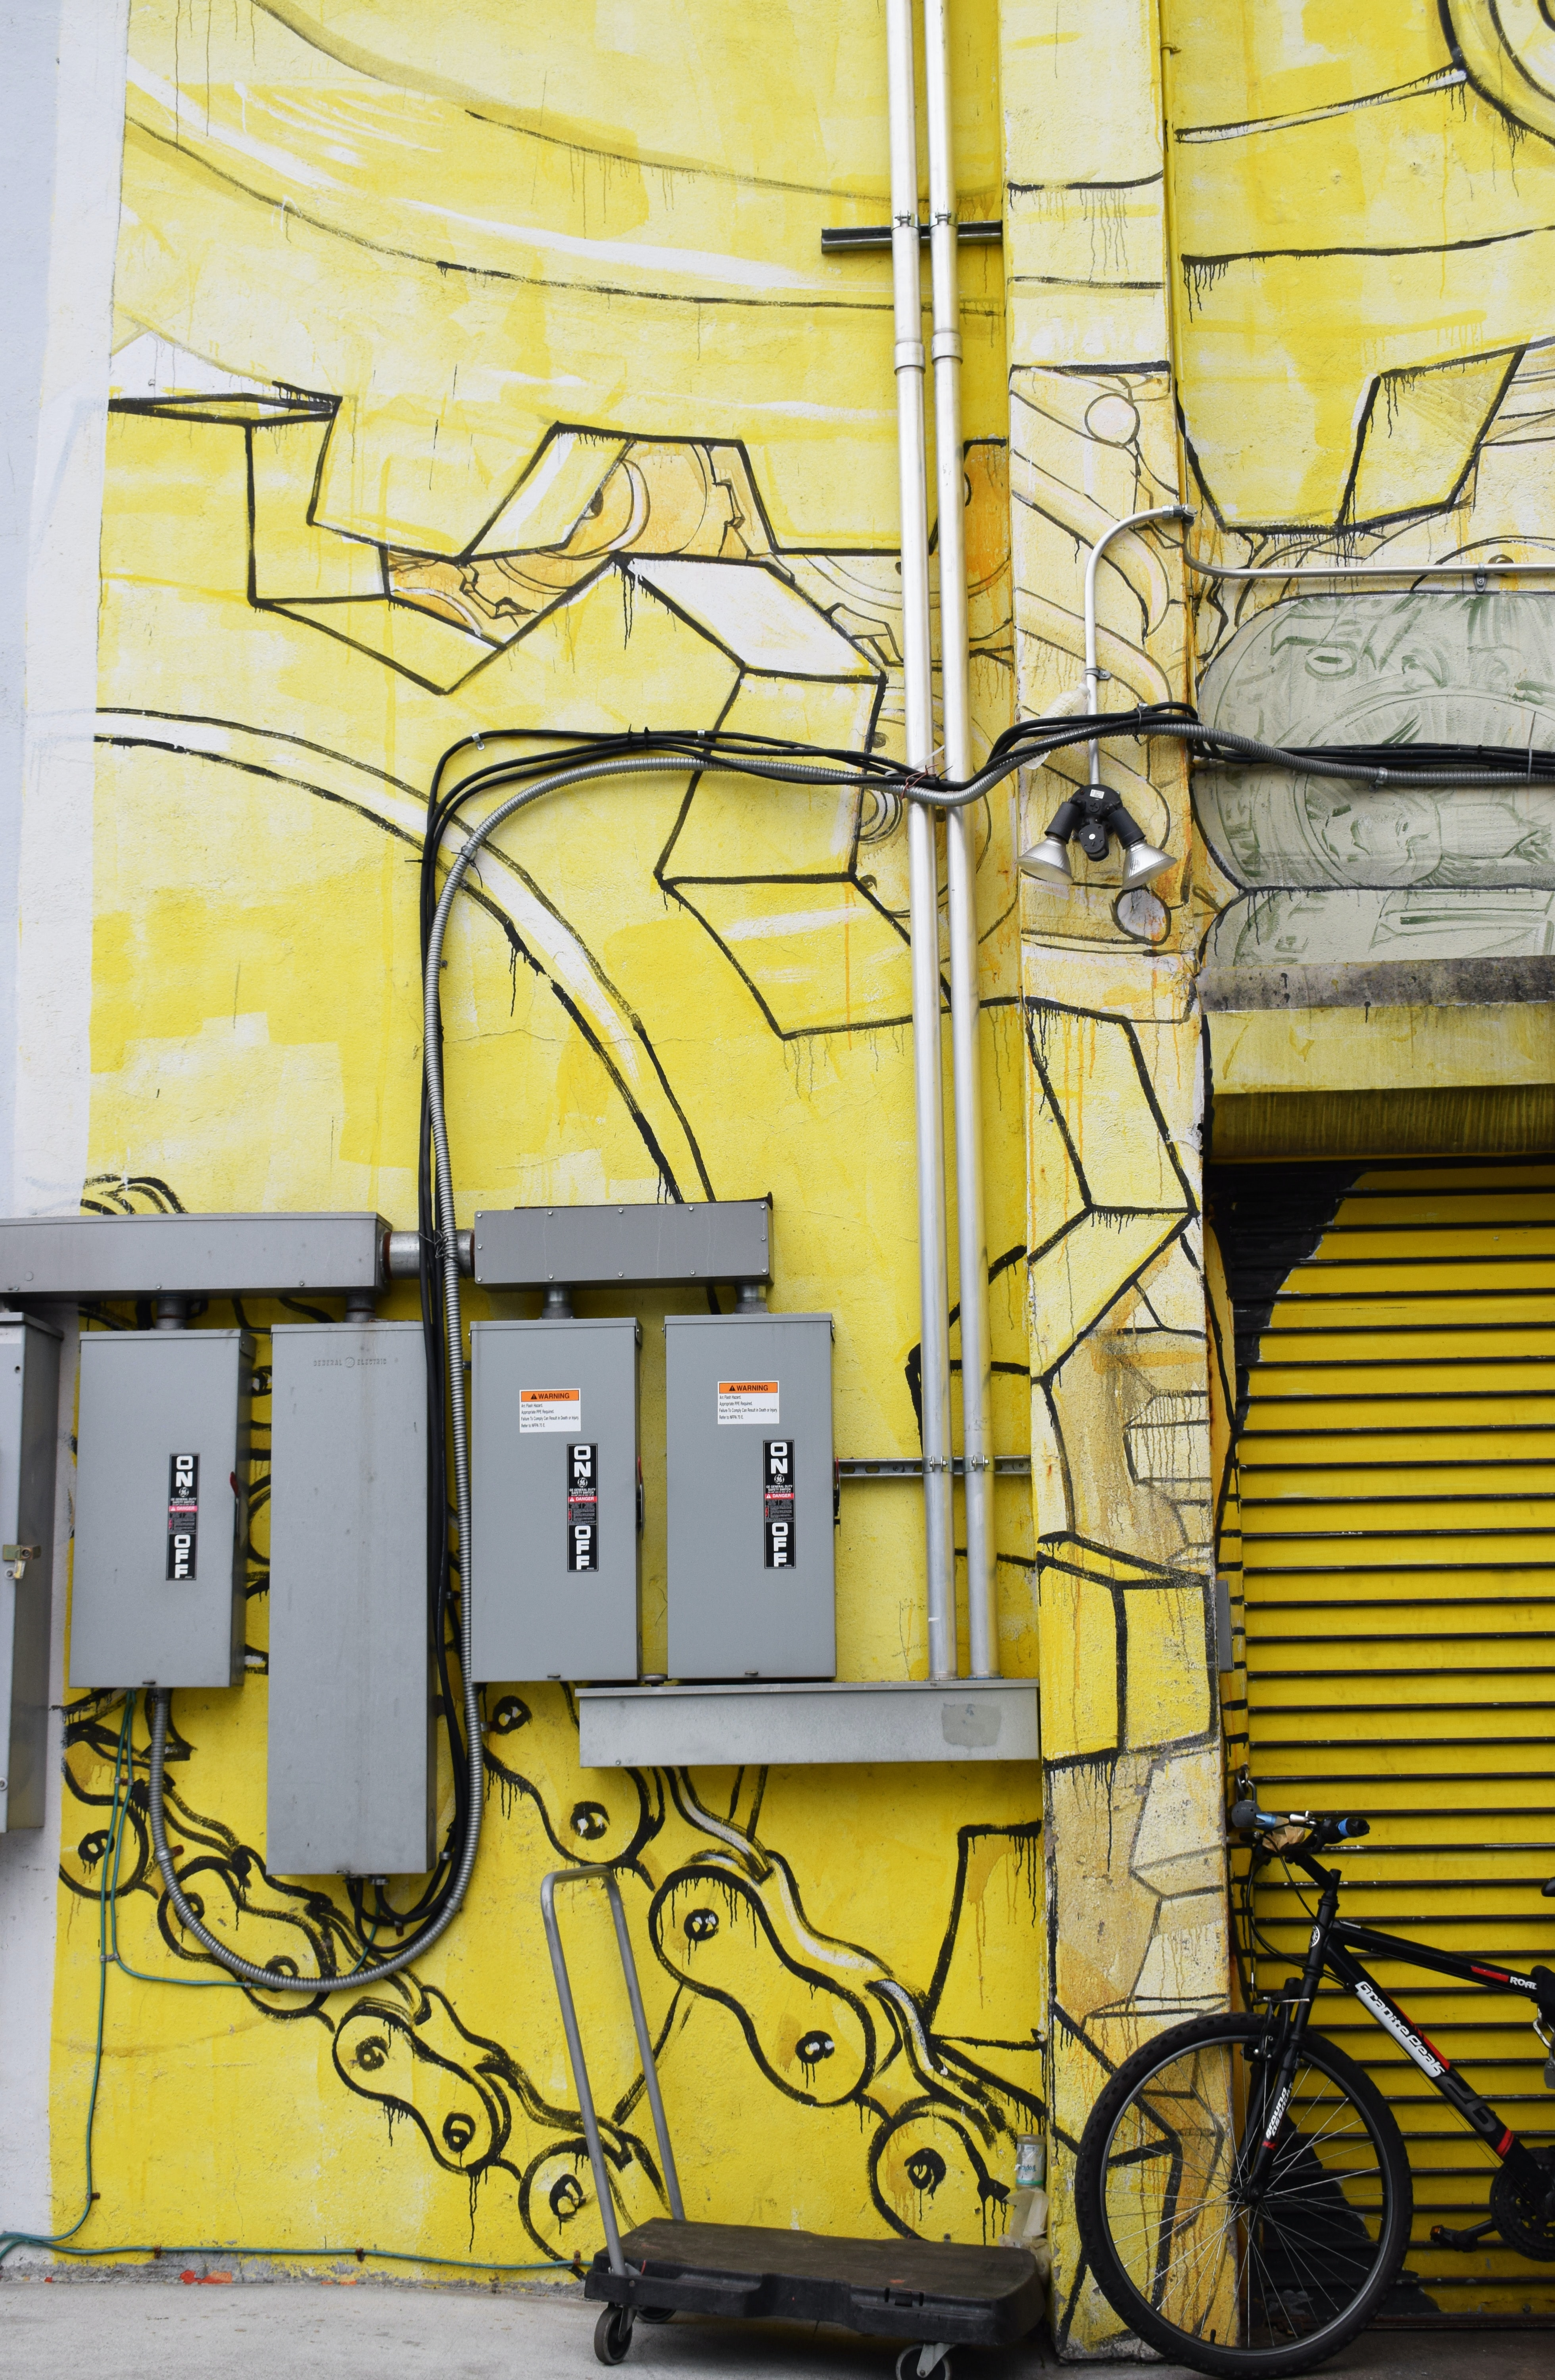 photo of grey circuit breaker case mounted at yellow wall